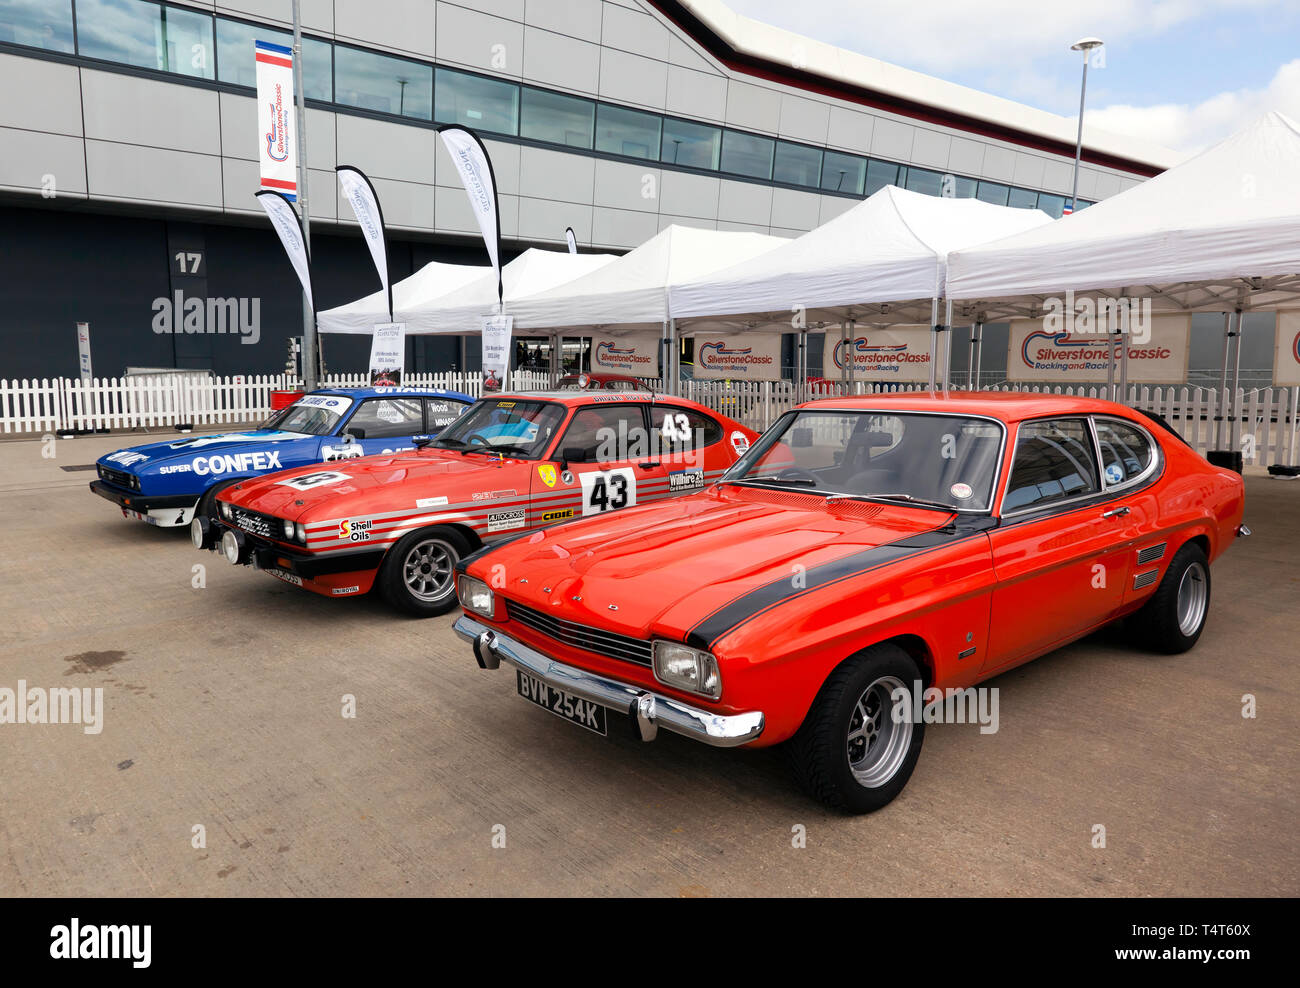 Ford Capri's on display in the International Paddock, part of the 50th Anniversary Celebrations  at the 2019 Silverstone Classic Media Day - Stock Image